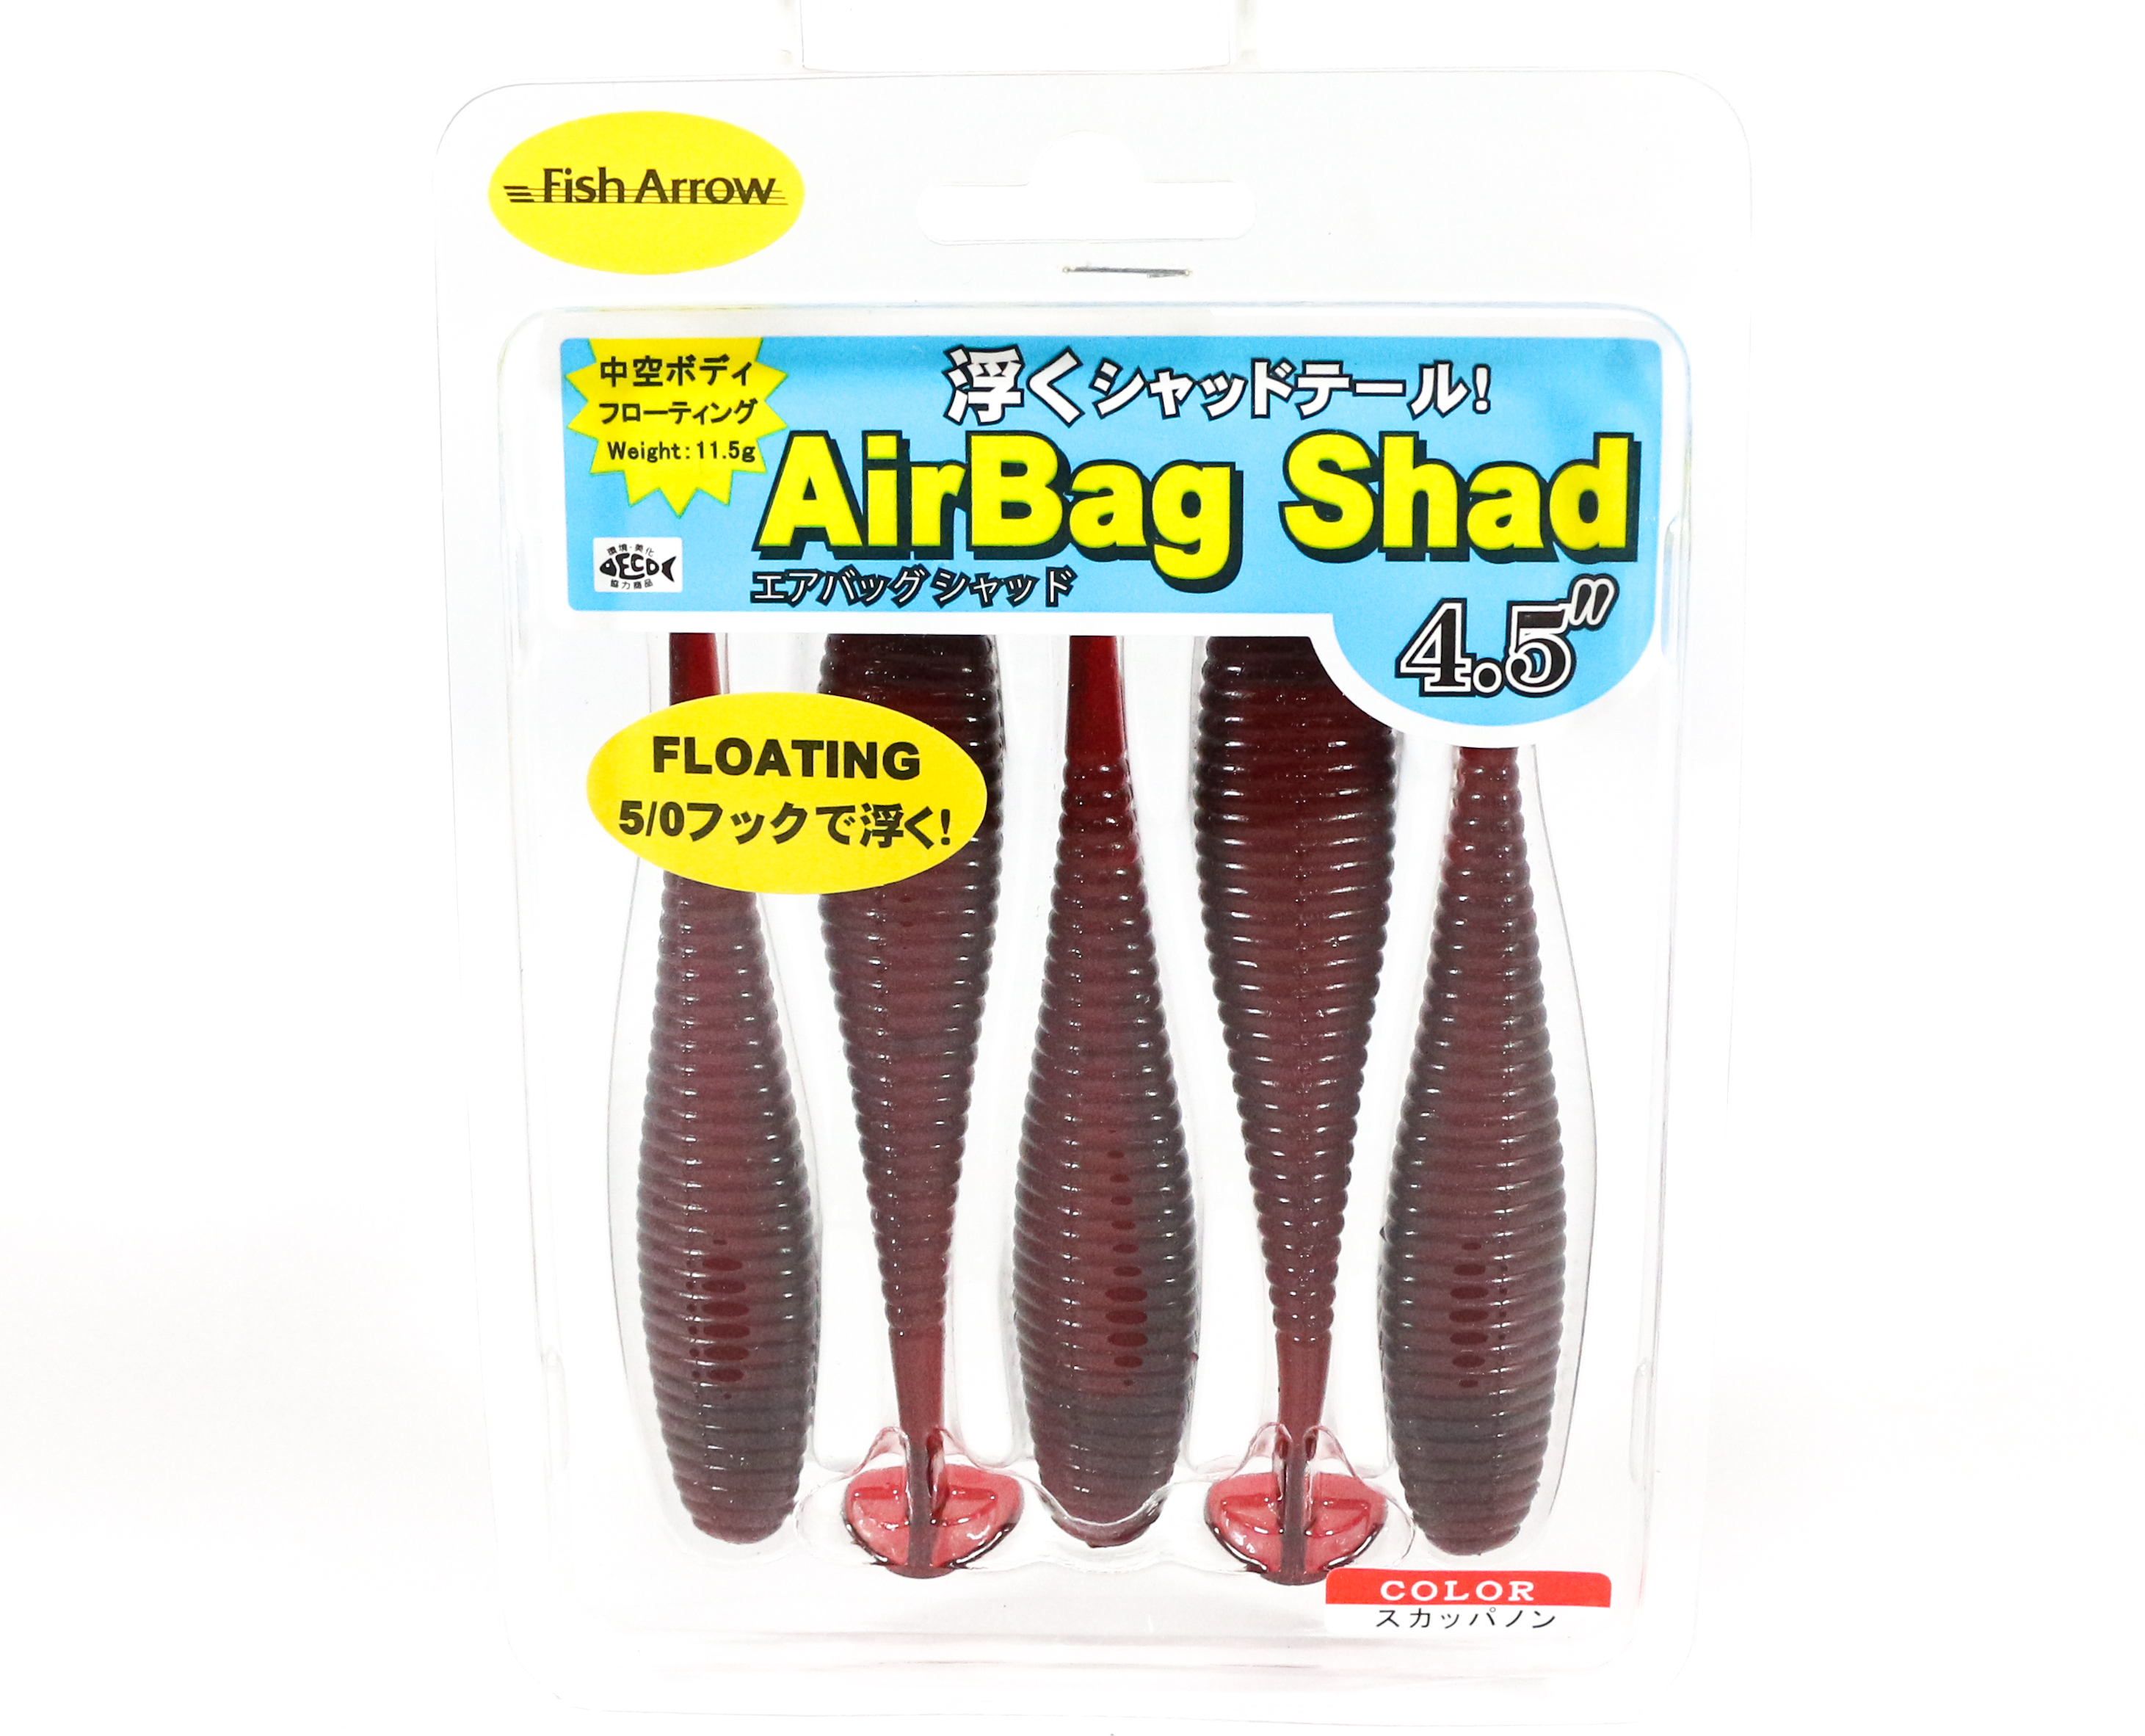 Fish Arrow Soft Lure Air Bag Shad 4.5 Inch 5 Piece per pack #03 (0769)